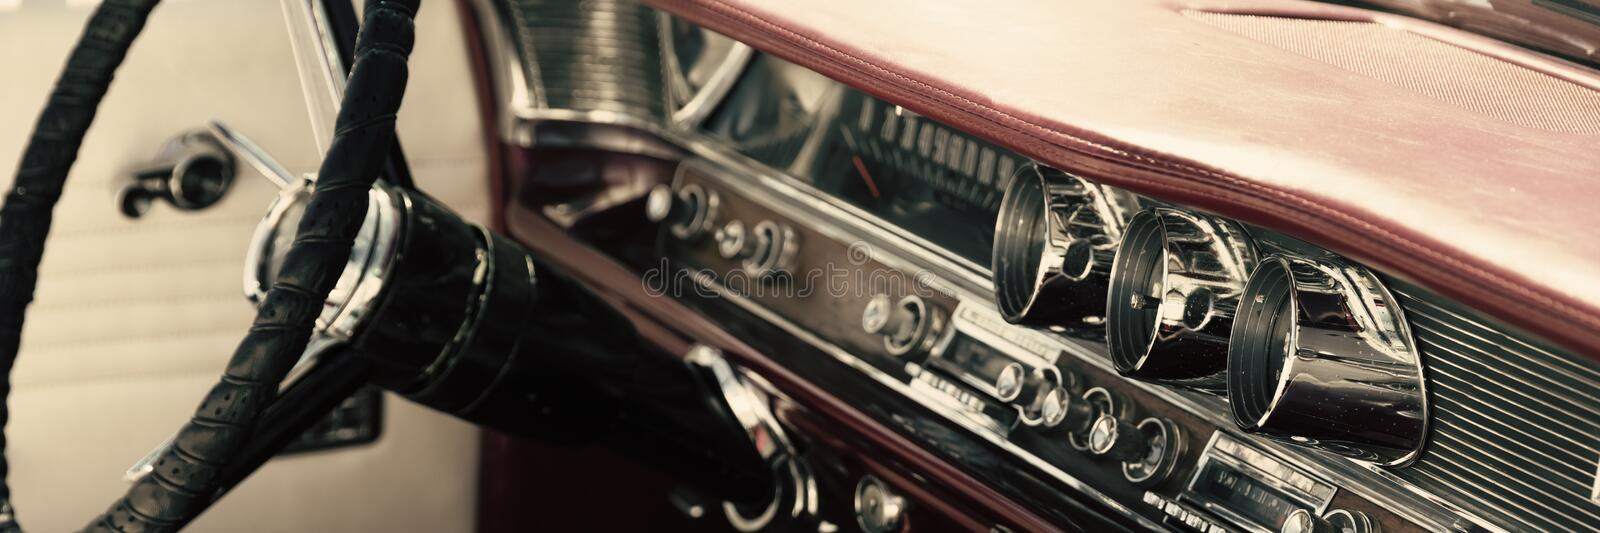 Classic car interior. Dashboard close-up stock photos